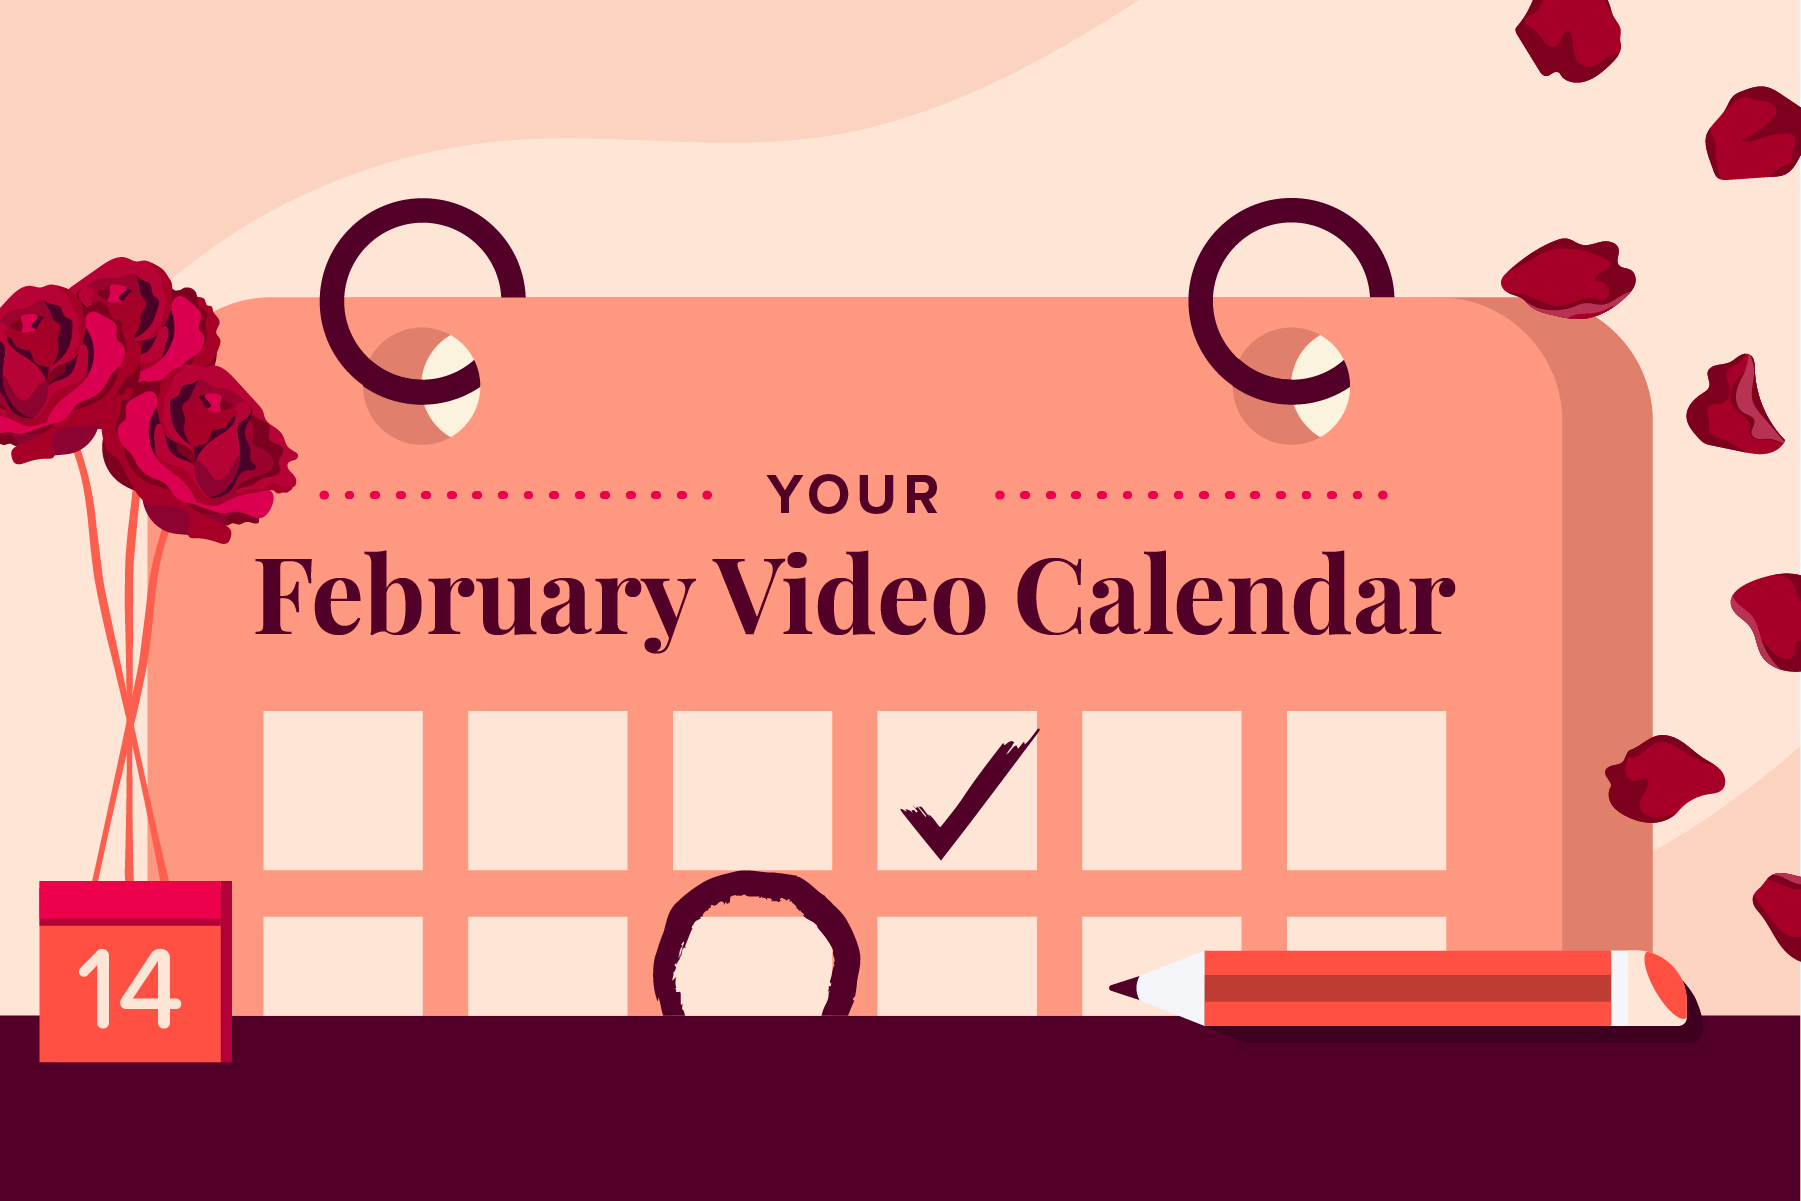 February Social Holidays to Celebrate with Video